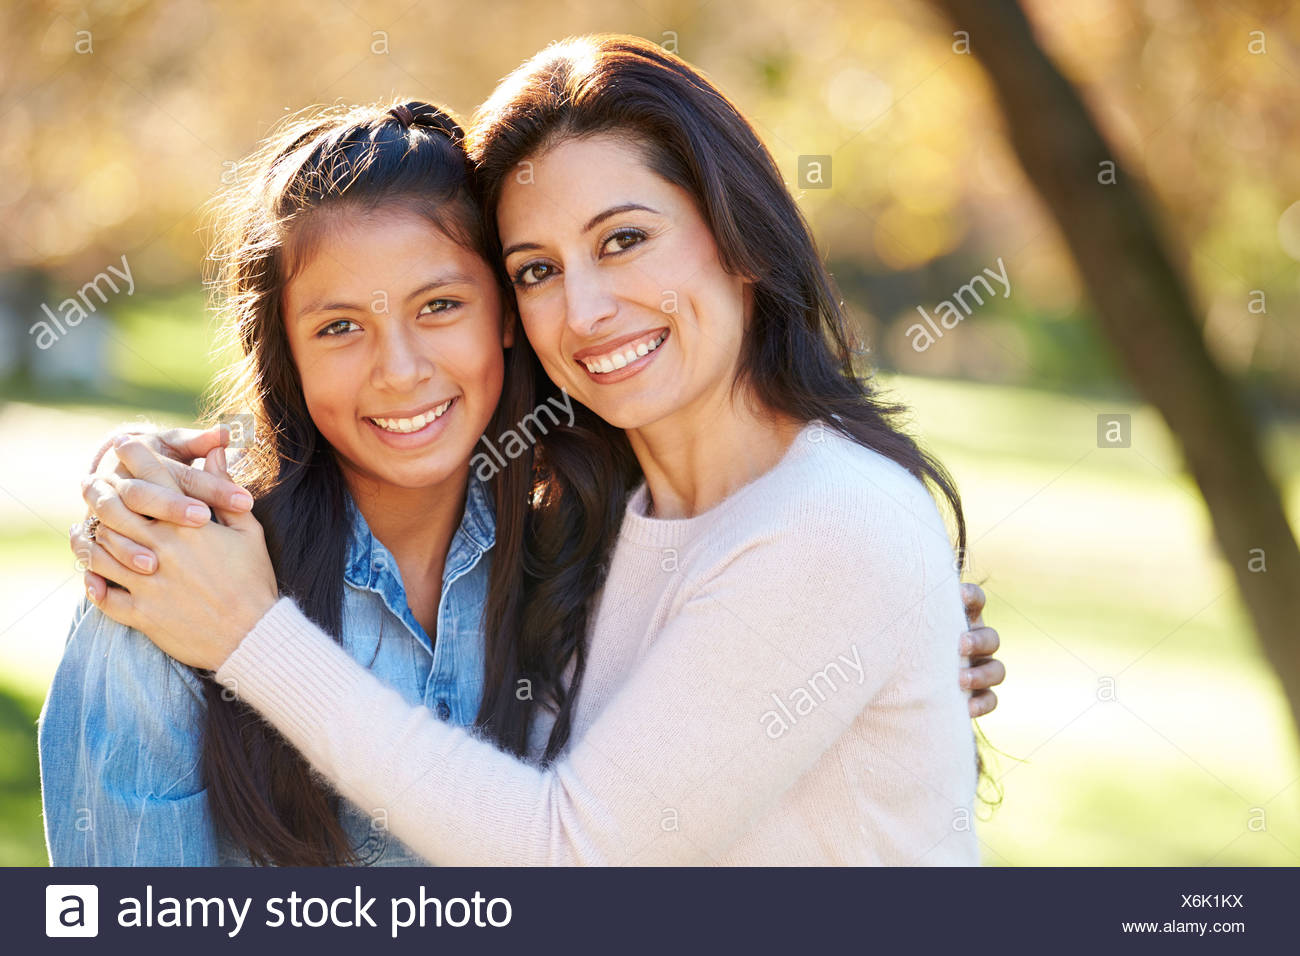 Portrait Of Mother And Daughter In Countryside - Stock Image